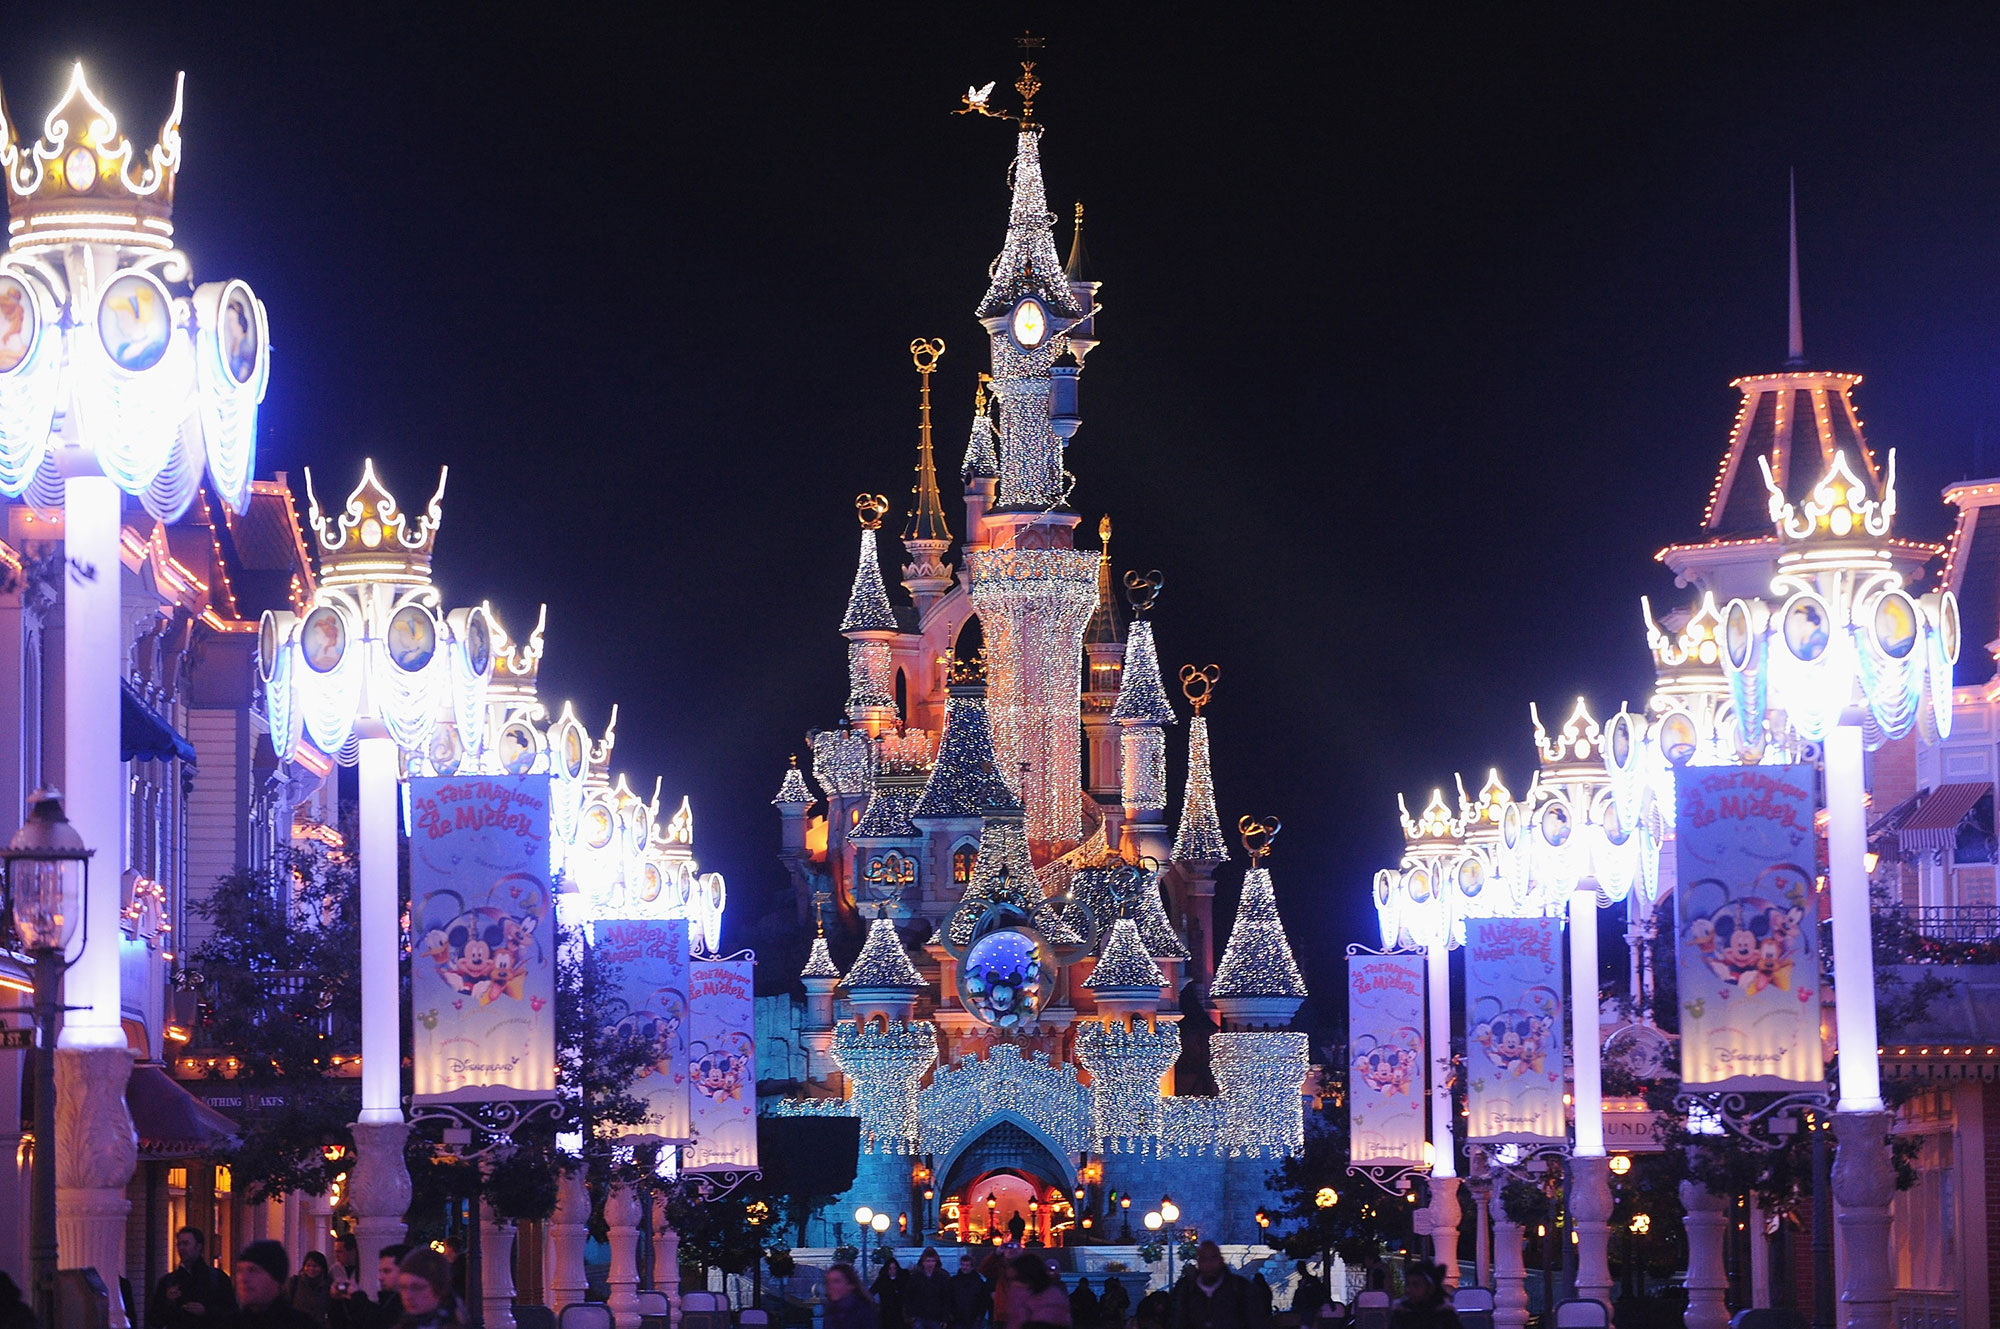 Get a First Look at the New Frozen Land Coming to Disneyland Paris in 2023